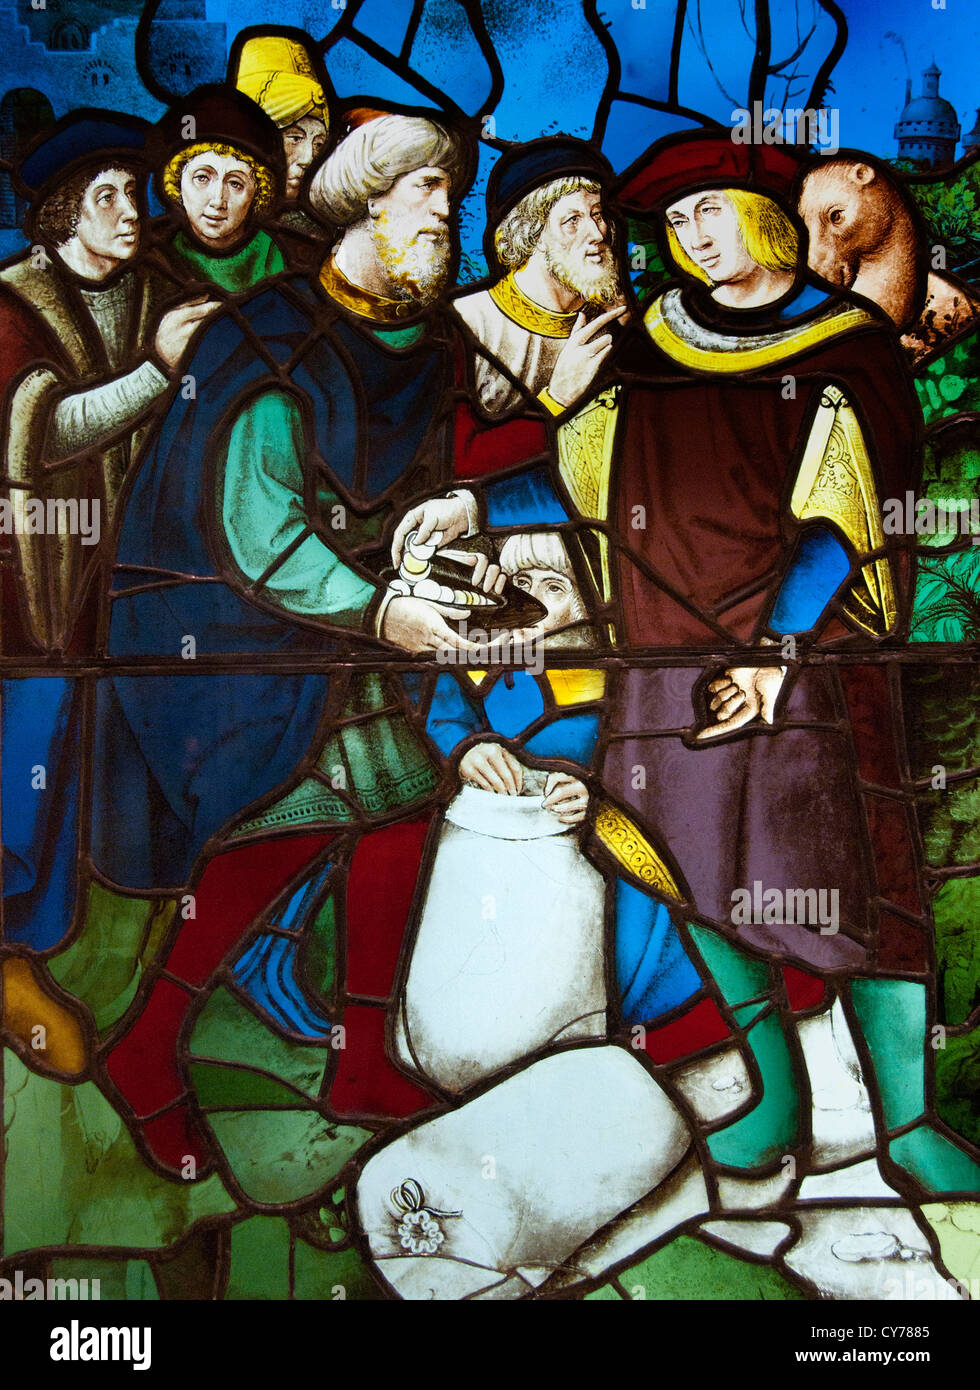 Joseph's Brethren Discover Money in Their Grain Sacks. 1530 French Rouen Glass stained 91 x 66 cm - Stock Image